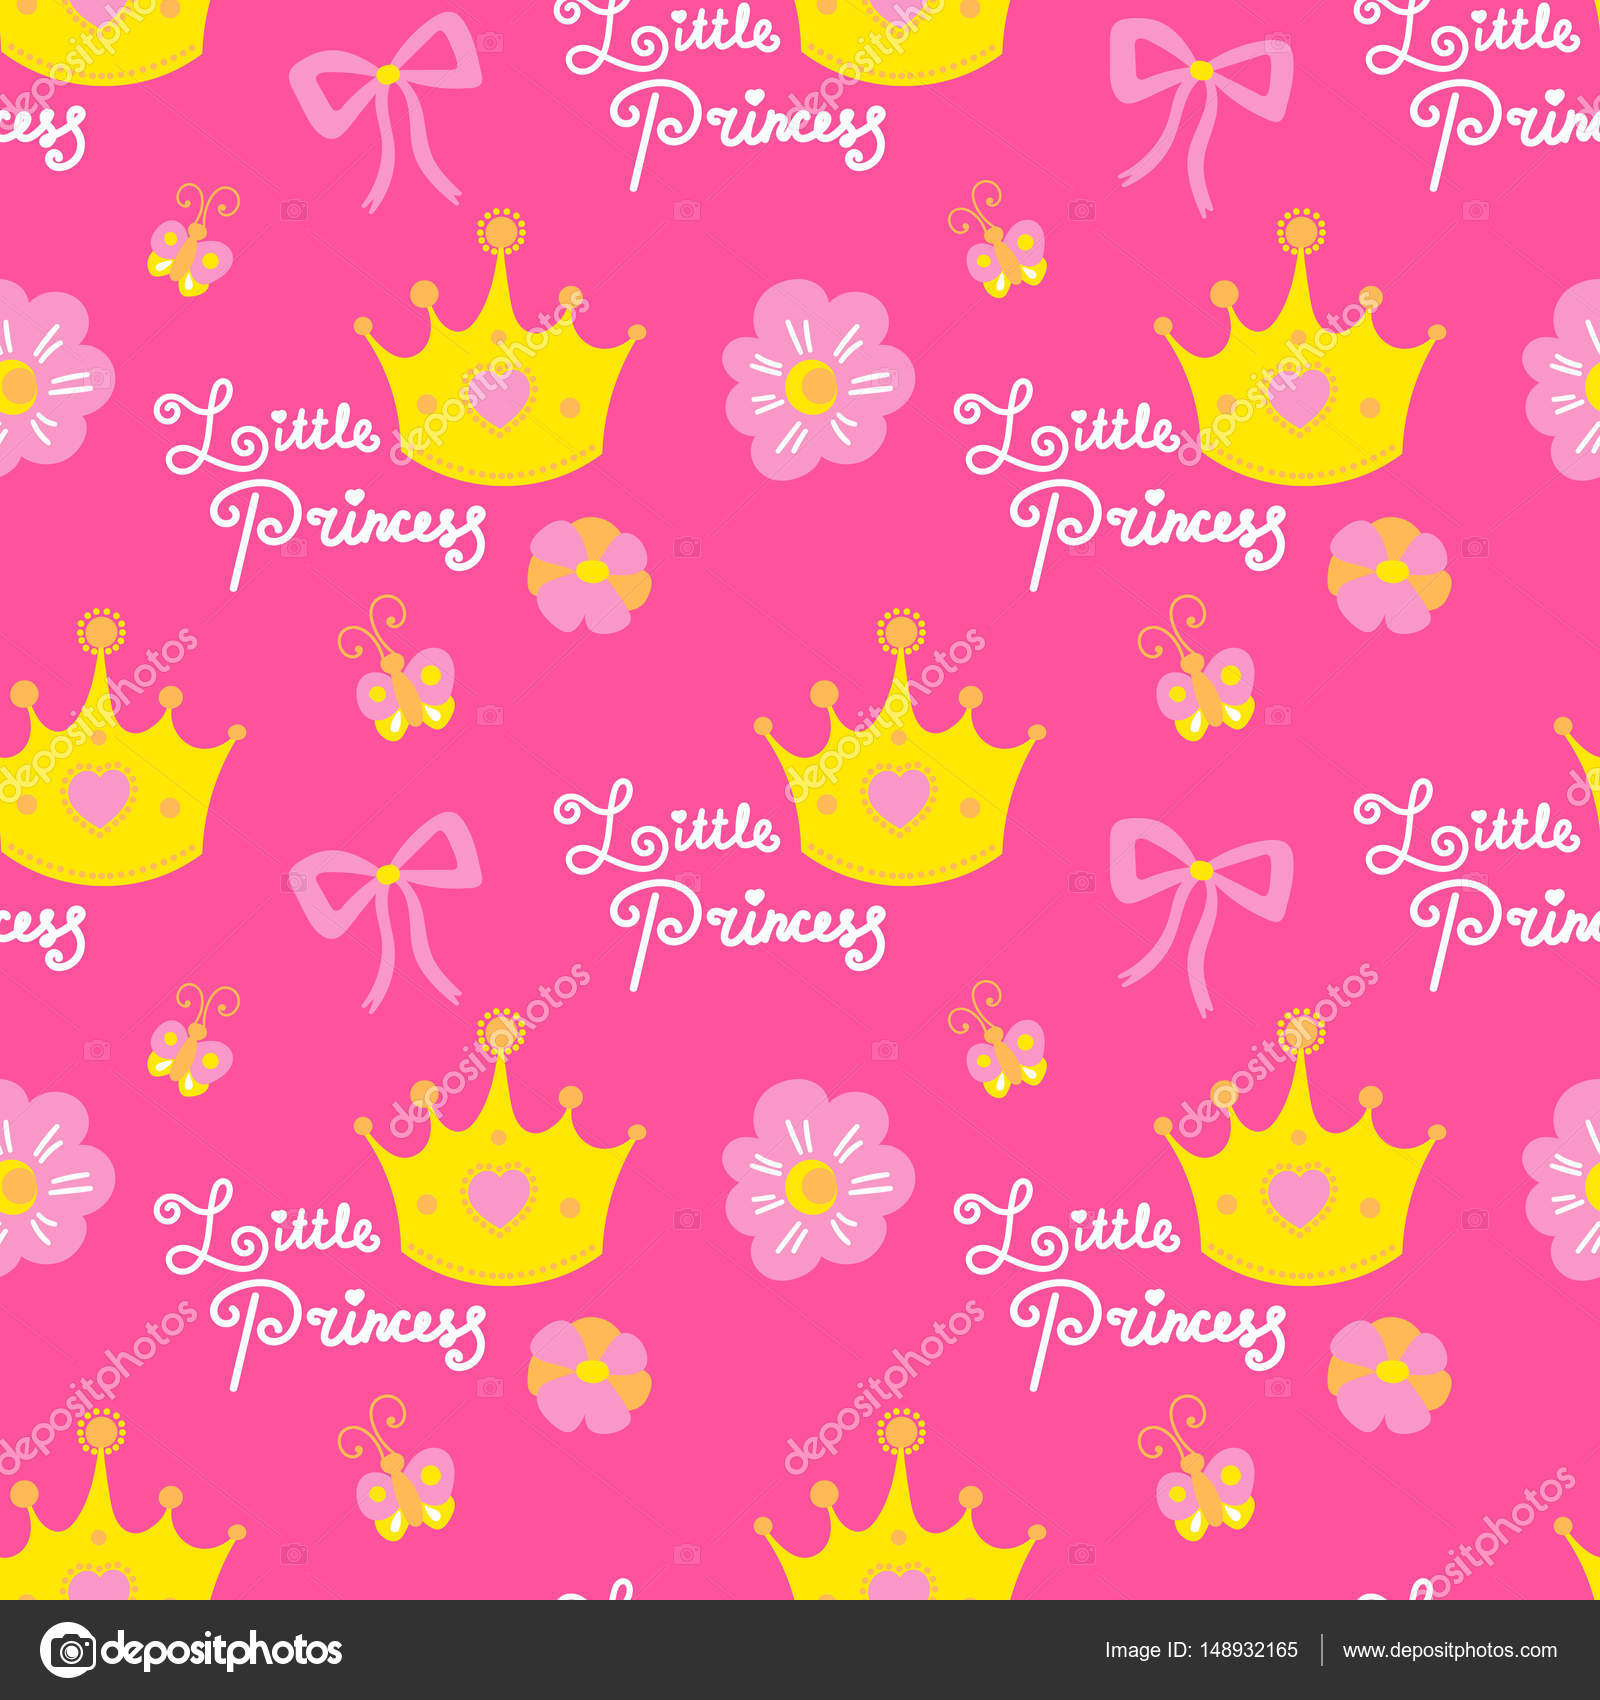 birthday girl wallpaper ; depositphotos_148932165-stock-illustration-little-princess-pattern-vector-pink